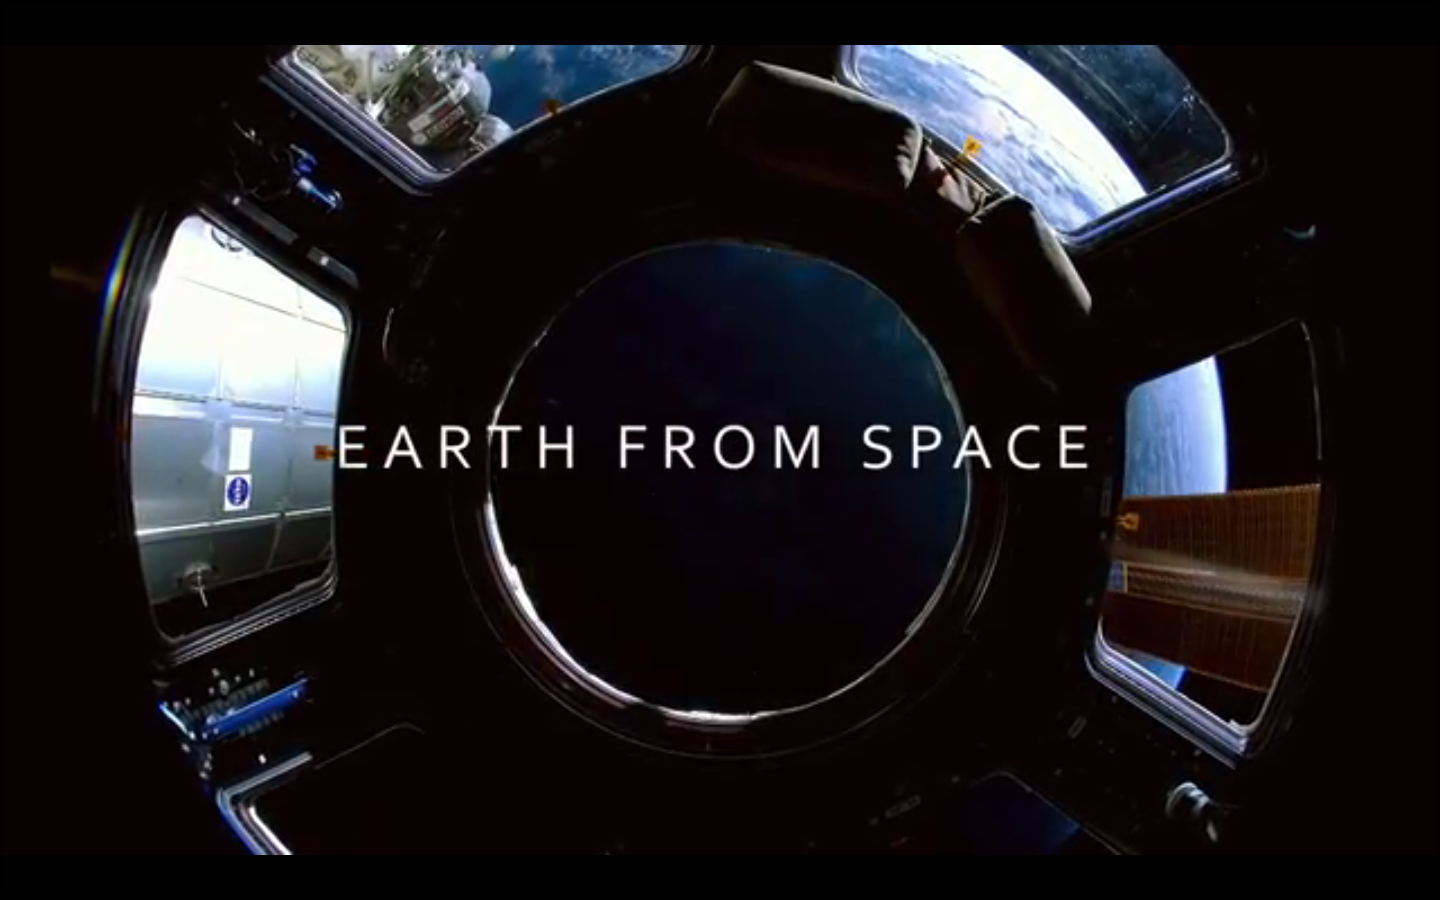 Earth from Space title credit